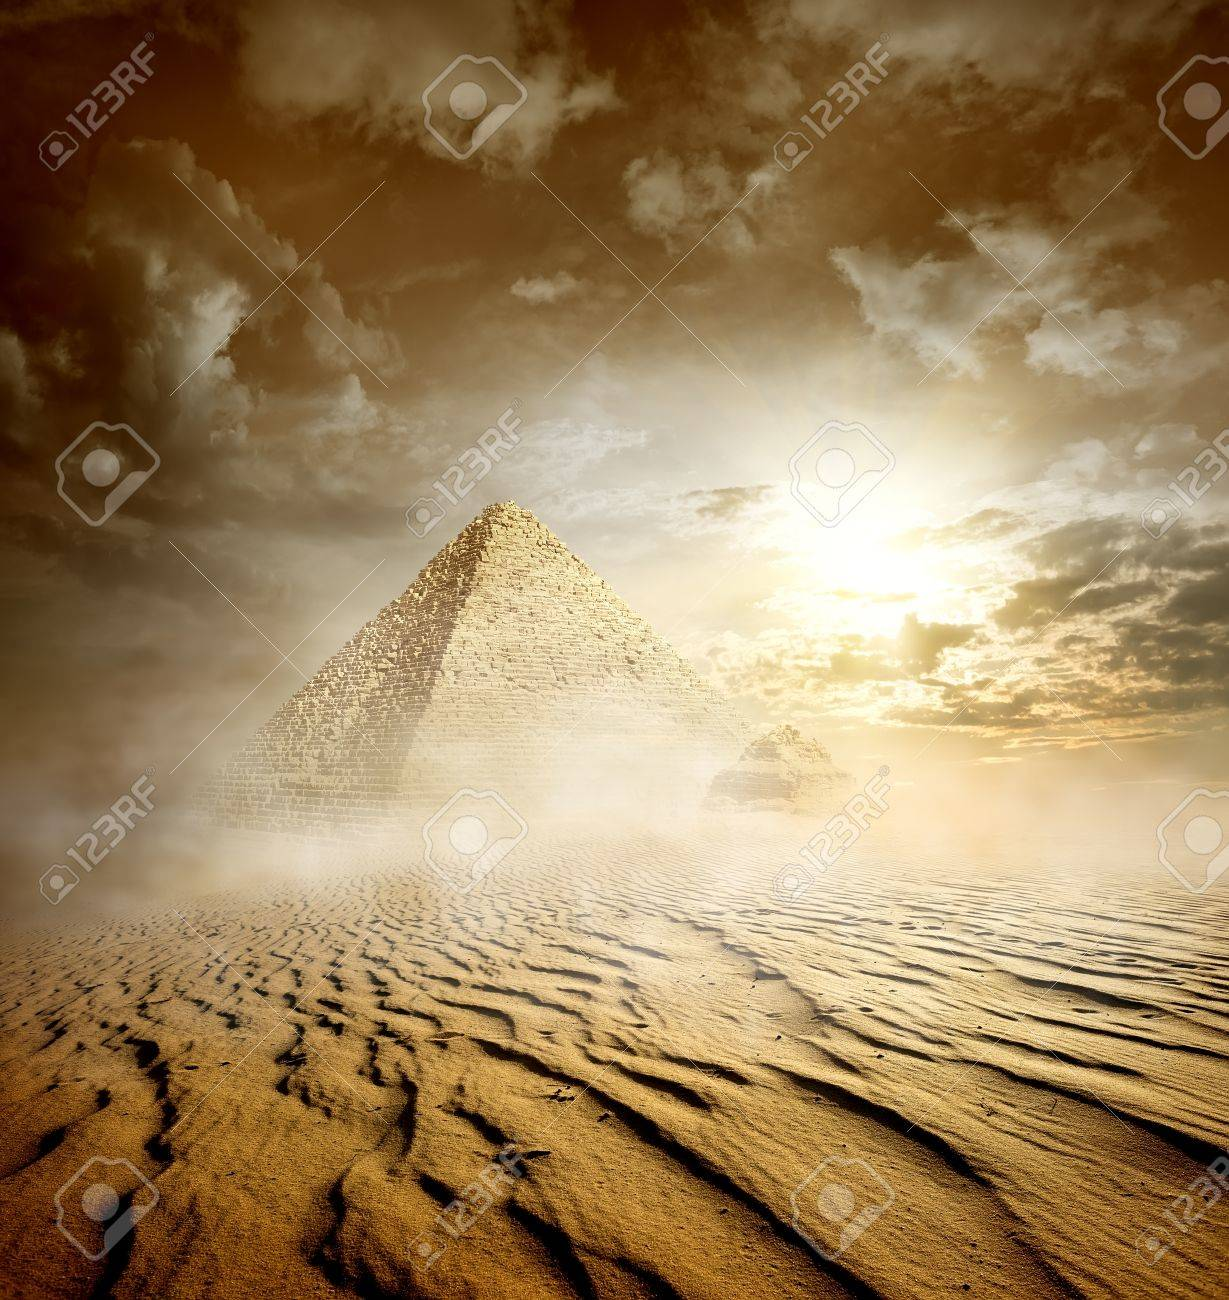 Storm clouds and pyramids in sand desert - 50375156